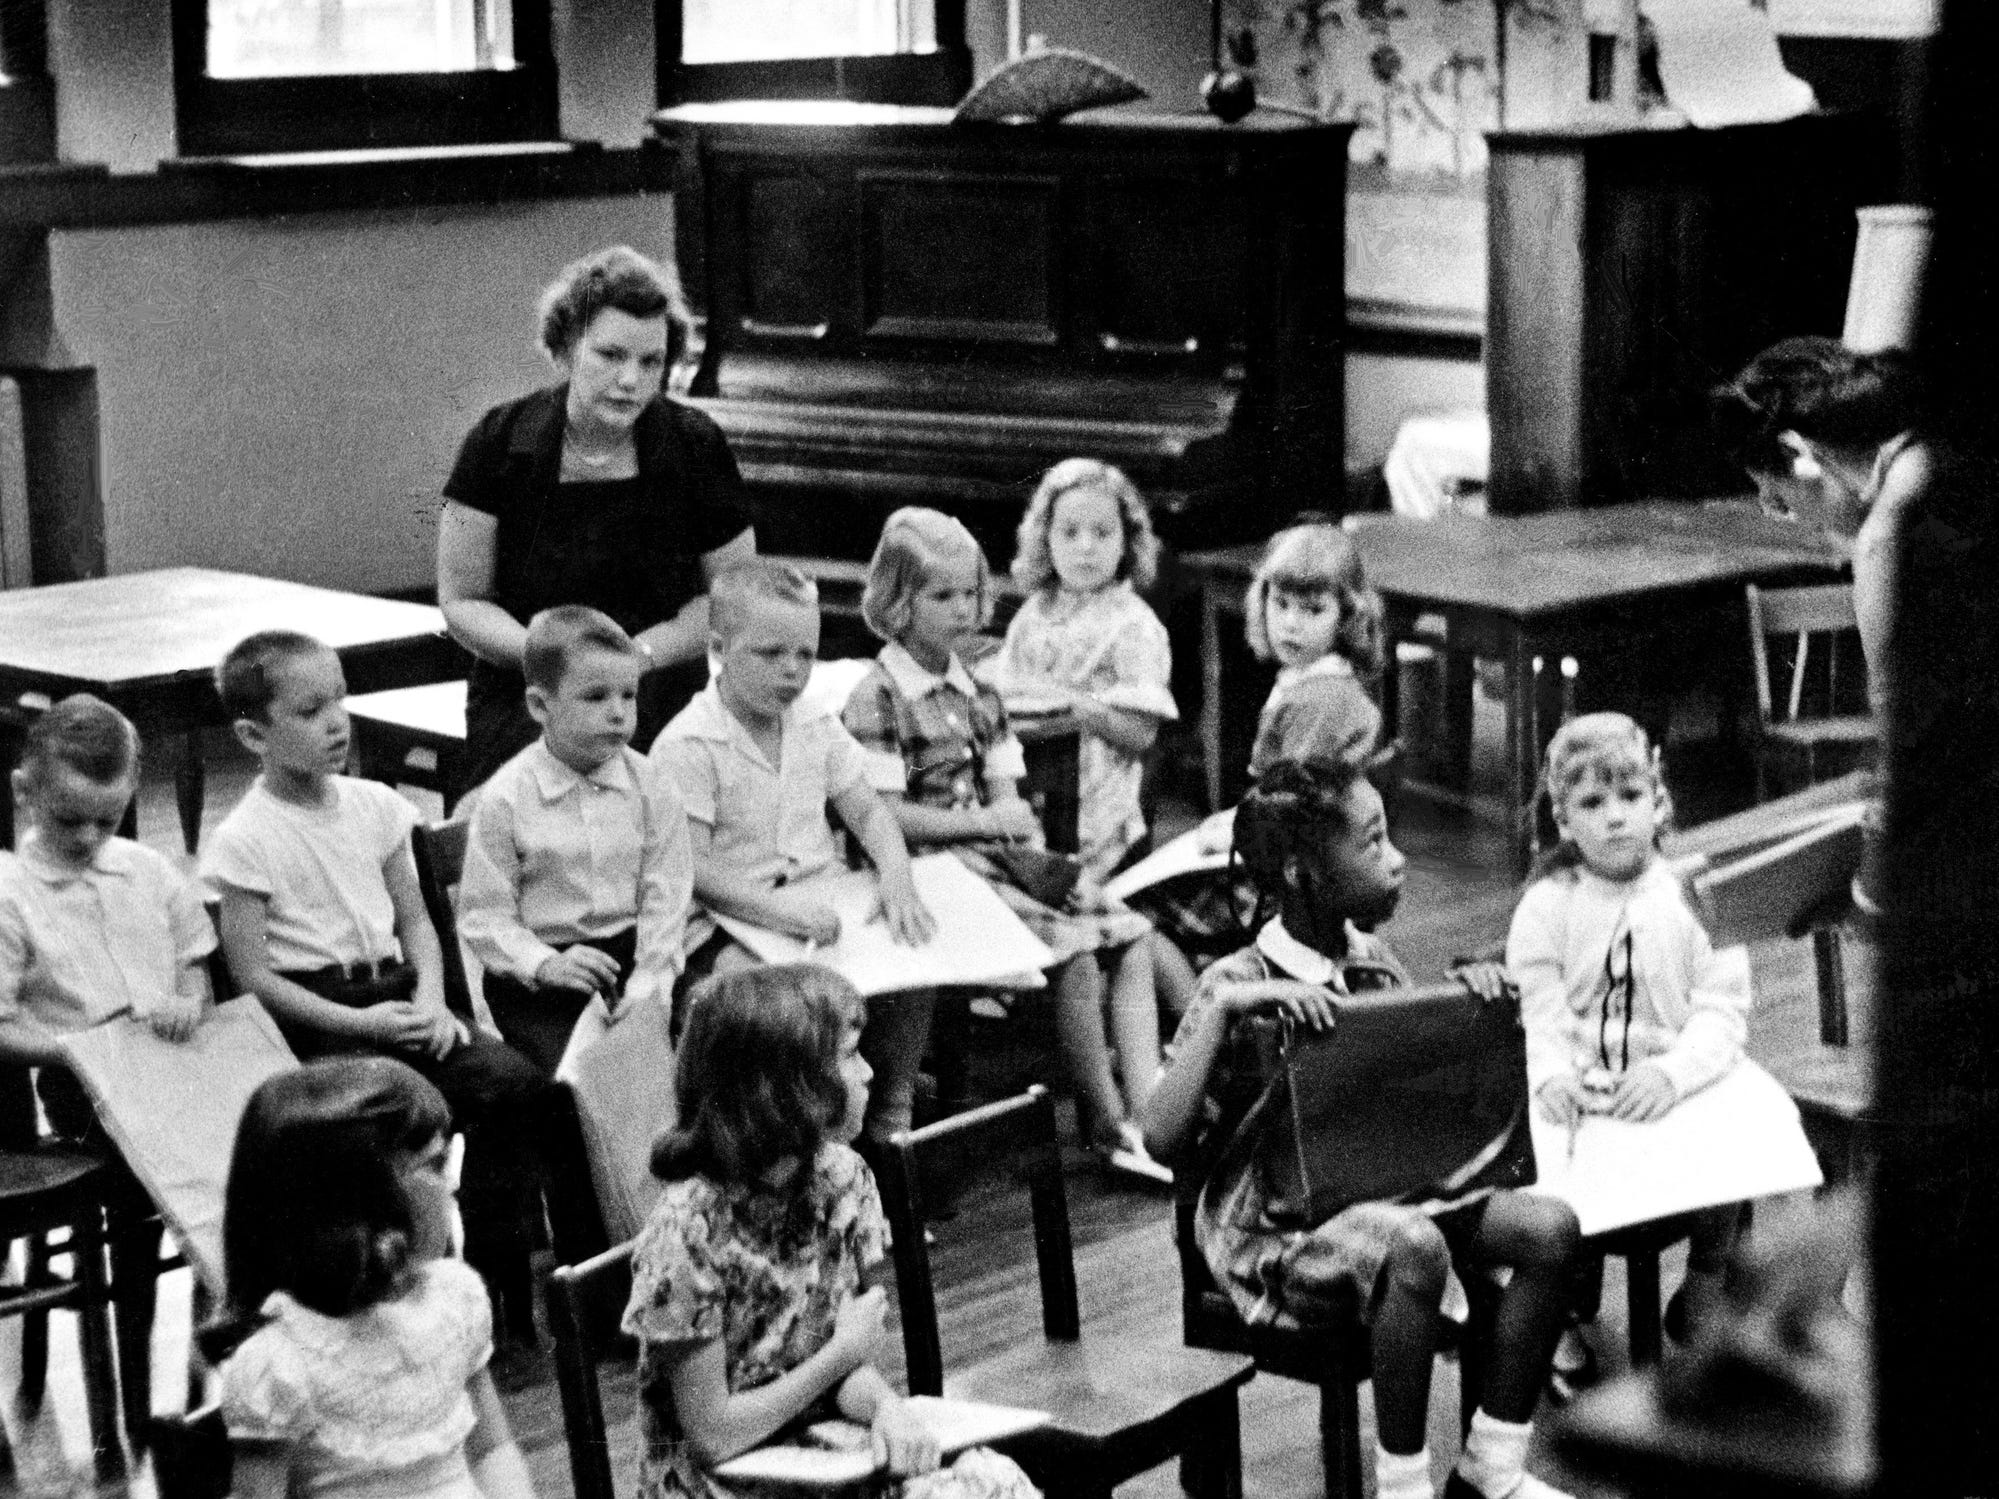 First-graders sit quietly in a classroom at Glenn Elementary School as the school begins its term Sept. 9, 1957. Holding a school satchel is 6-year-old Jacquelyn Faye Griffith, one of two black children integrated into the school.